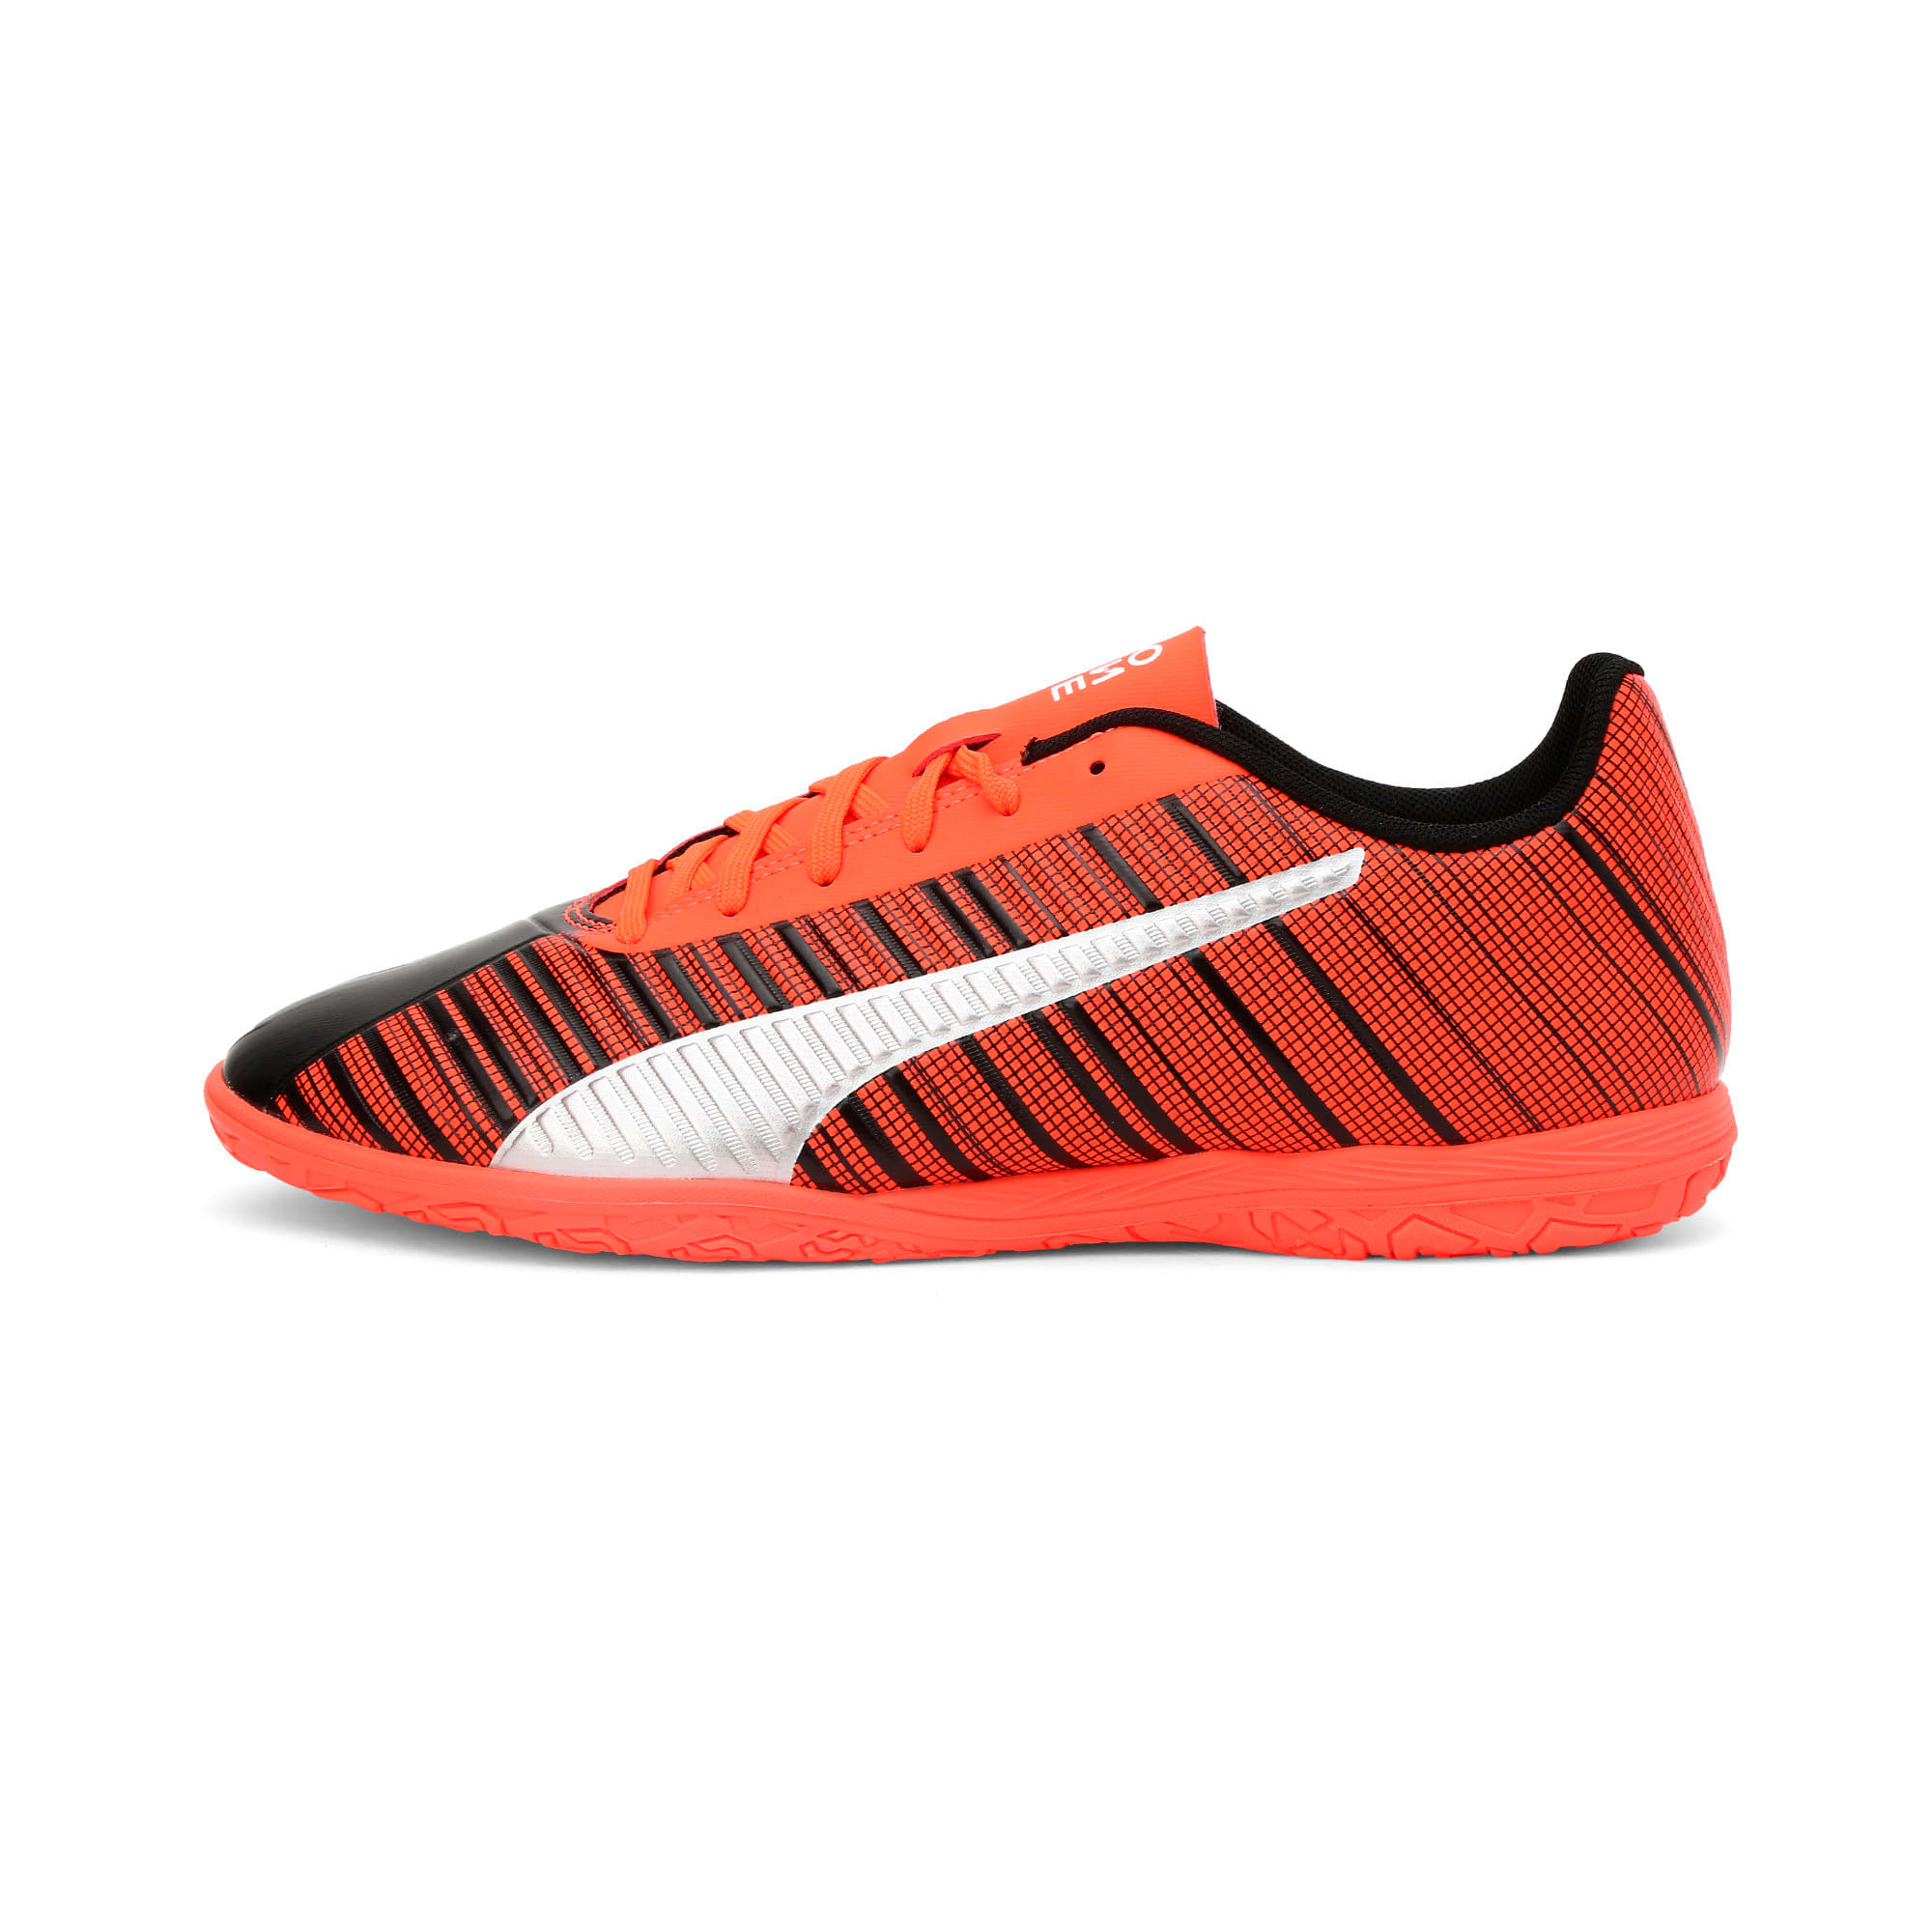 Thumbnail 1 of PUMA ONE 5.4 IT Men's Football Boots, Black-Nrgy Red-Aged Silver, medium-IND